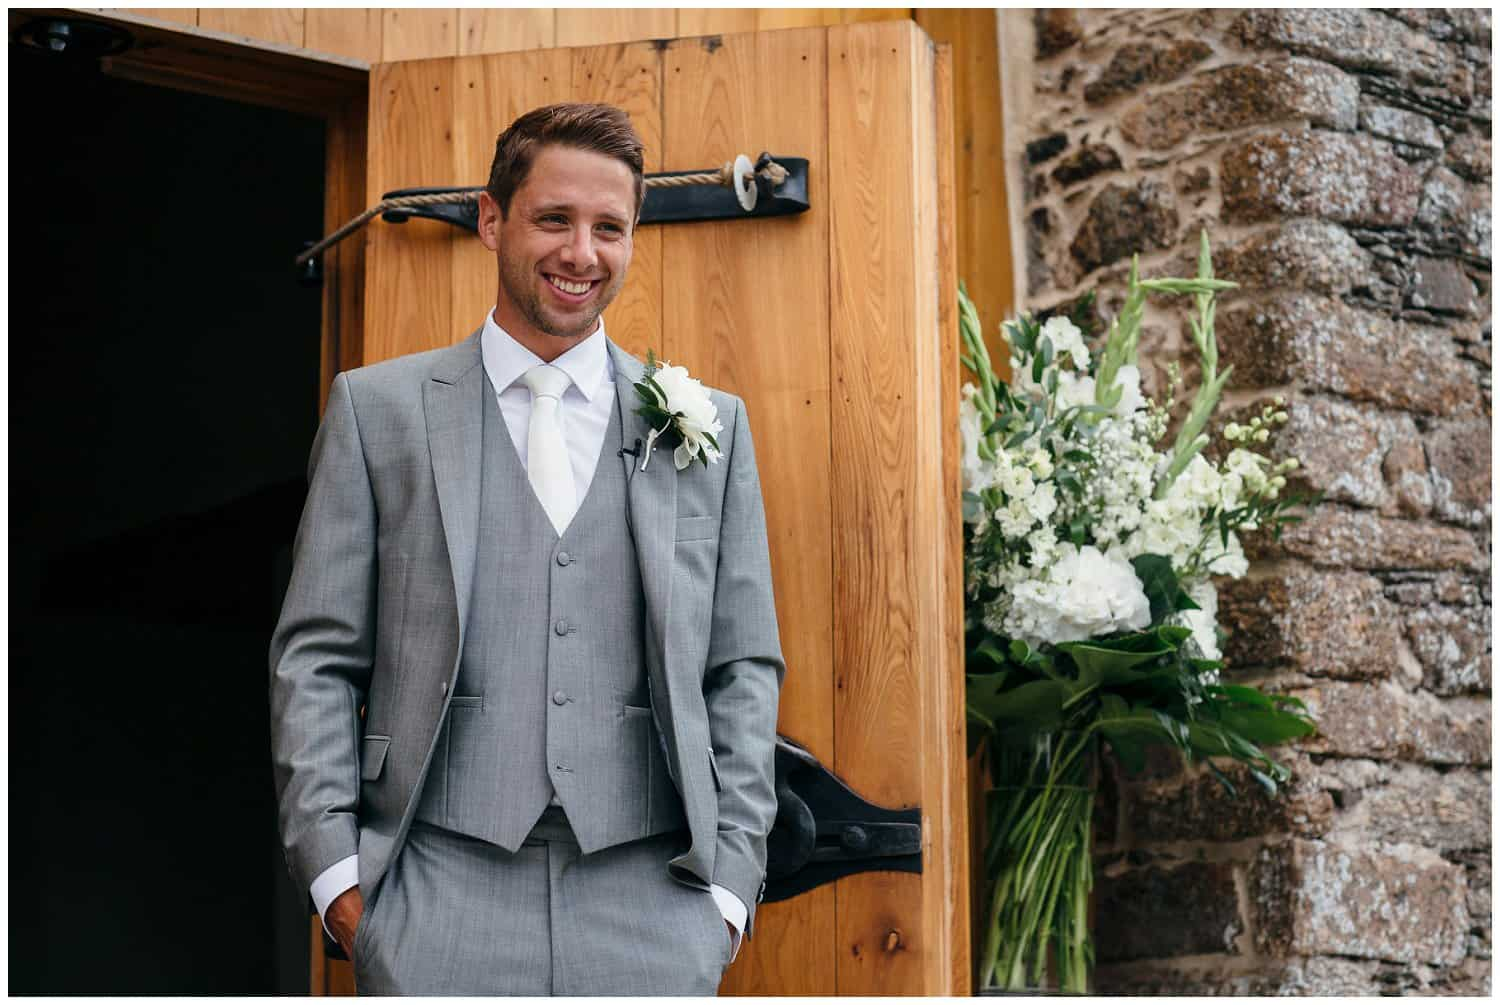 The wedding of Natalie & Dan. Civil ceremony. Barn wedding. The Great Barn Devon. Images by Freckle Photography